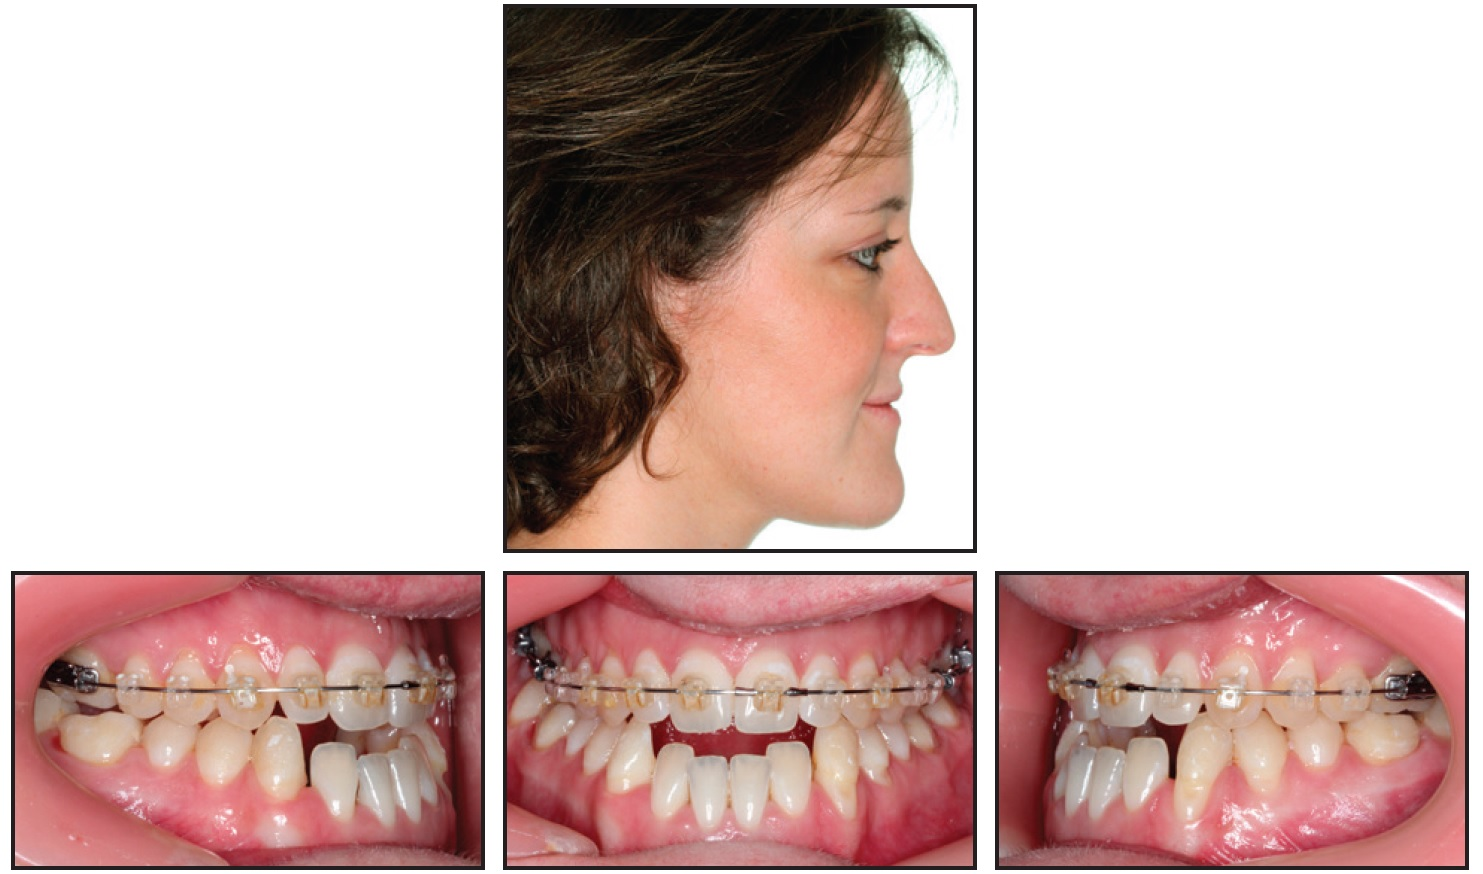 Nonsurgical Correction of Severe Skeletal Class III